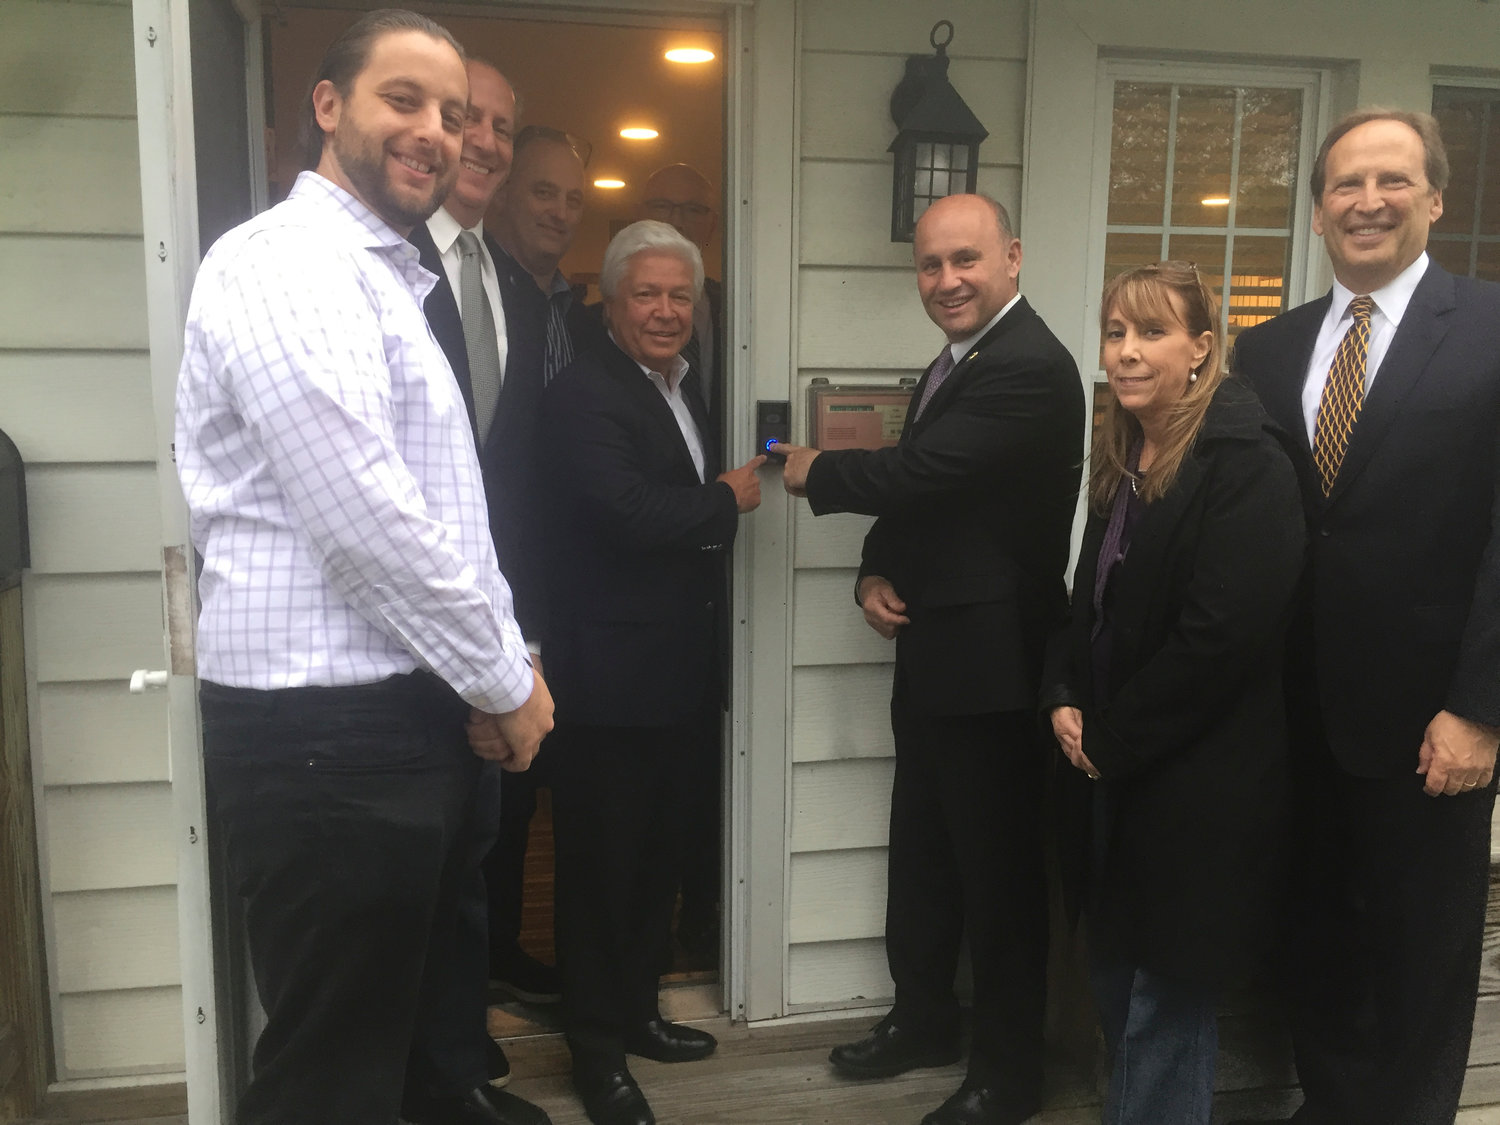 Hewlett Harbor Mayor Mark Weiss, center left, and Nassau County Police Commissioner Patrick Ryder pressed the button that activates the Ring Doorbell 2. With them were, from left, Hewlett Harbor resident Gil Bruh; Village Trustees Tom Cohen, Leonard Oppenheimer and Jonathan Polakoff; State Assemblyman Melissa Miller; and Trustee Kenneth Kornblau.